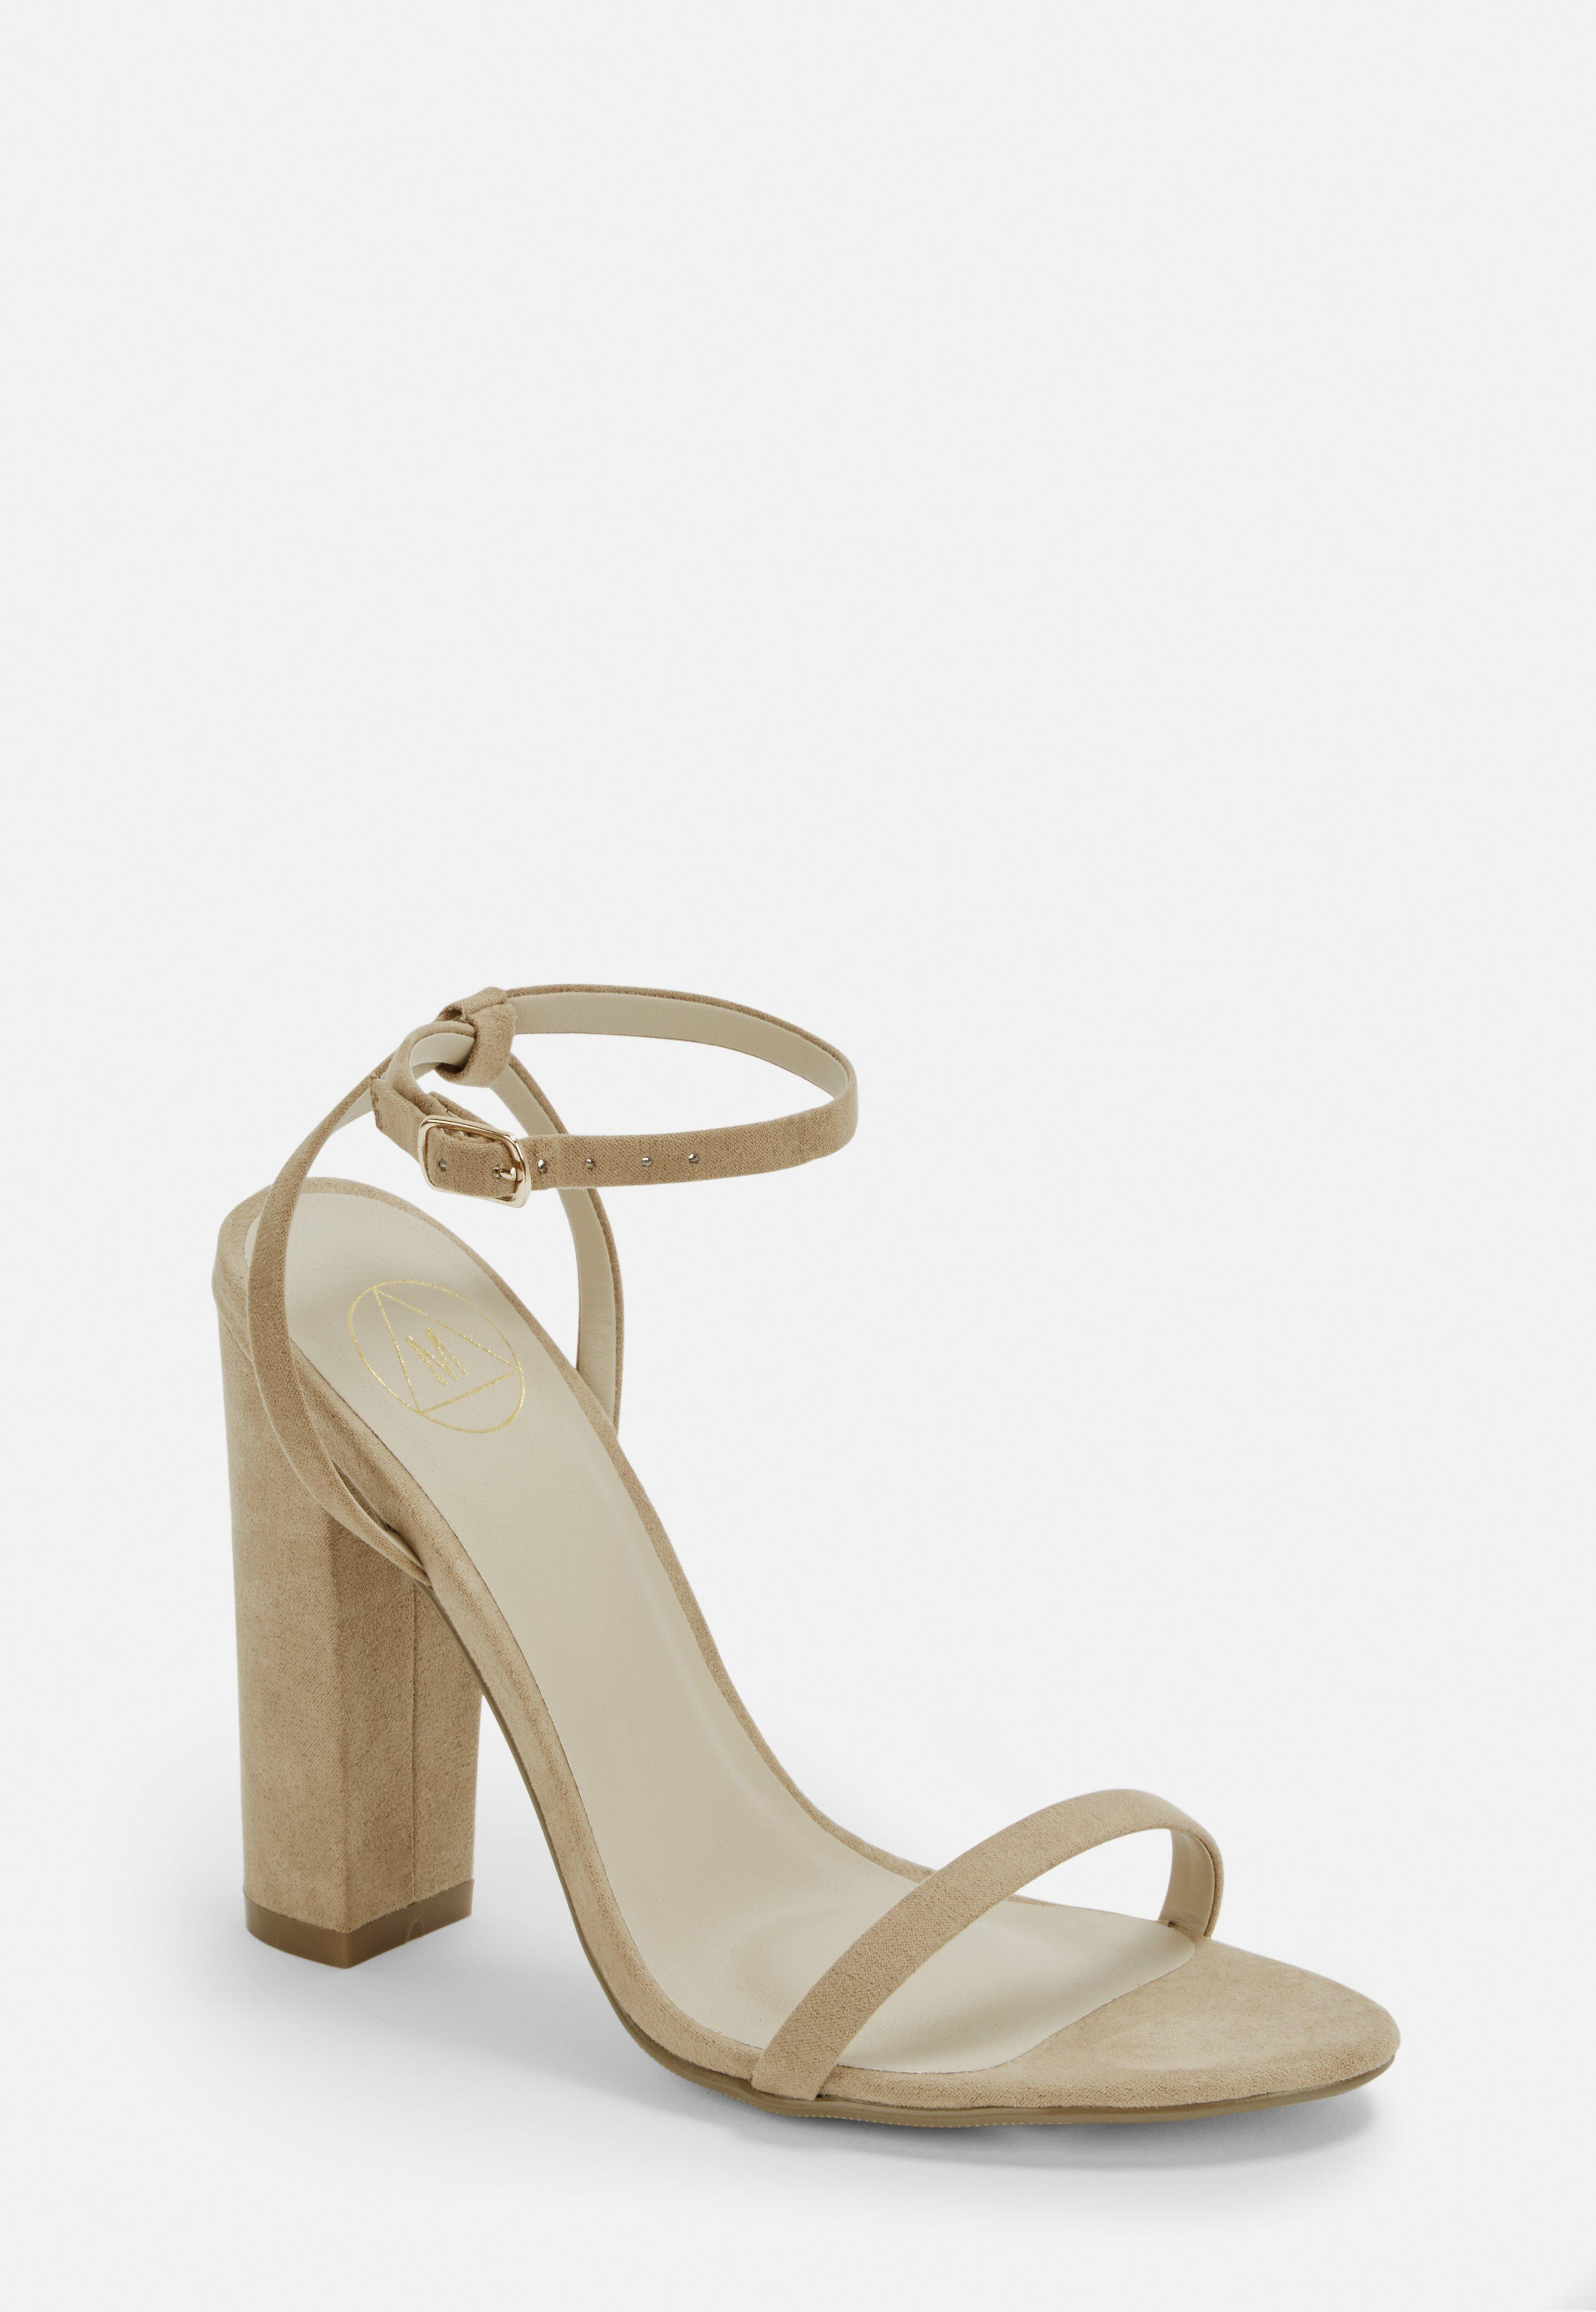 1761a3e6ea9d Lyst - Missguided Nude Faux Suede Heel Sandals in Natural